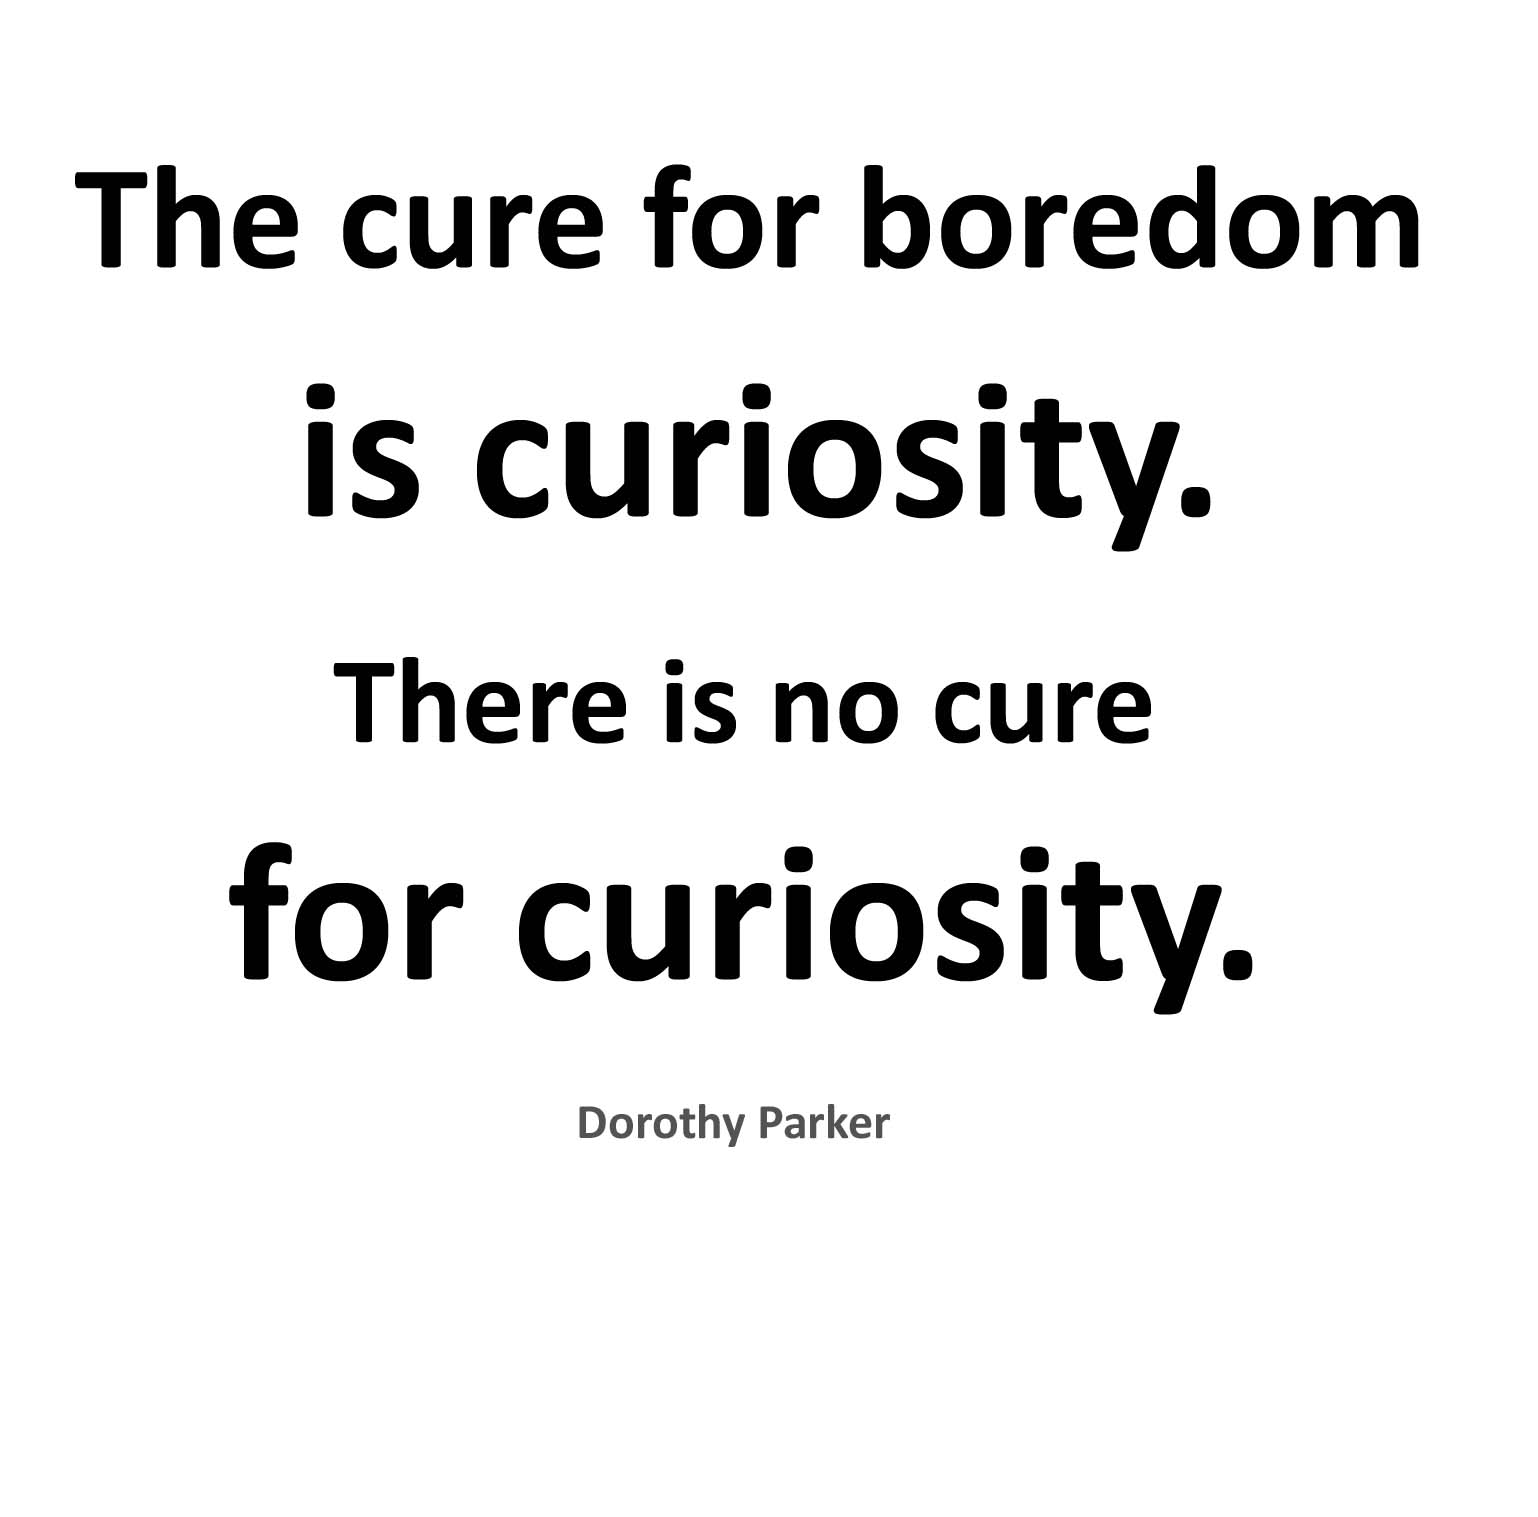 the-cure-for-boredom-is-curiosity-there-is-no-cure-for-curiosity-dorothy-parker-2.jpg